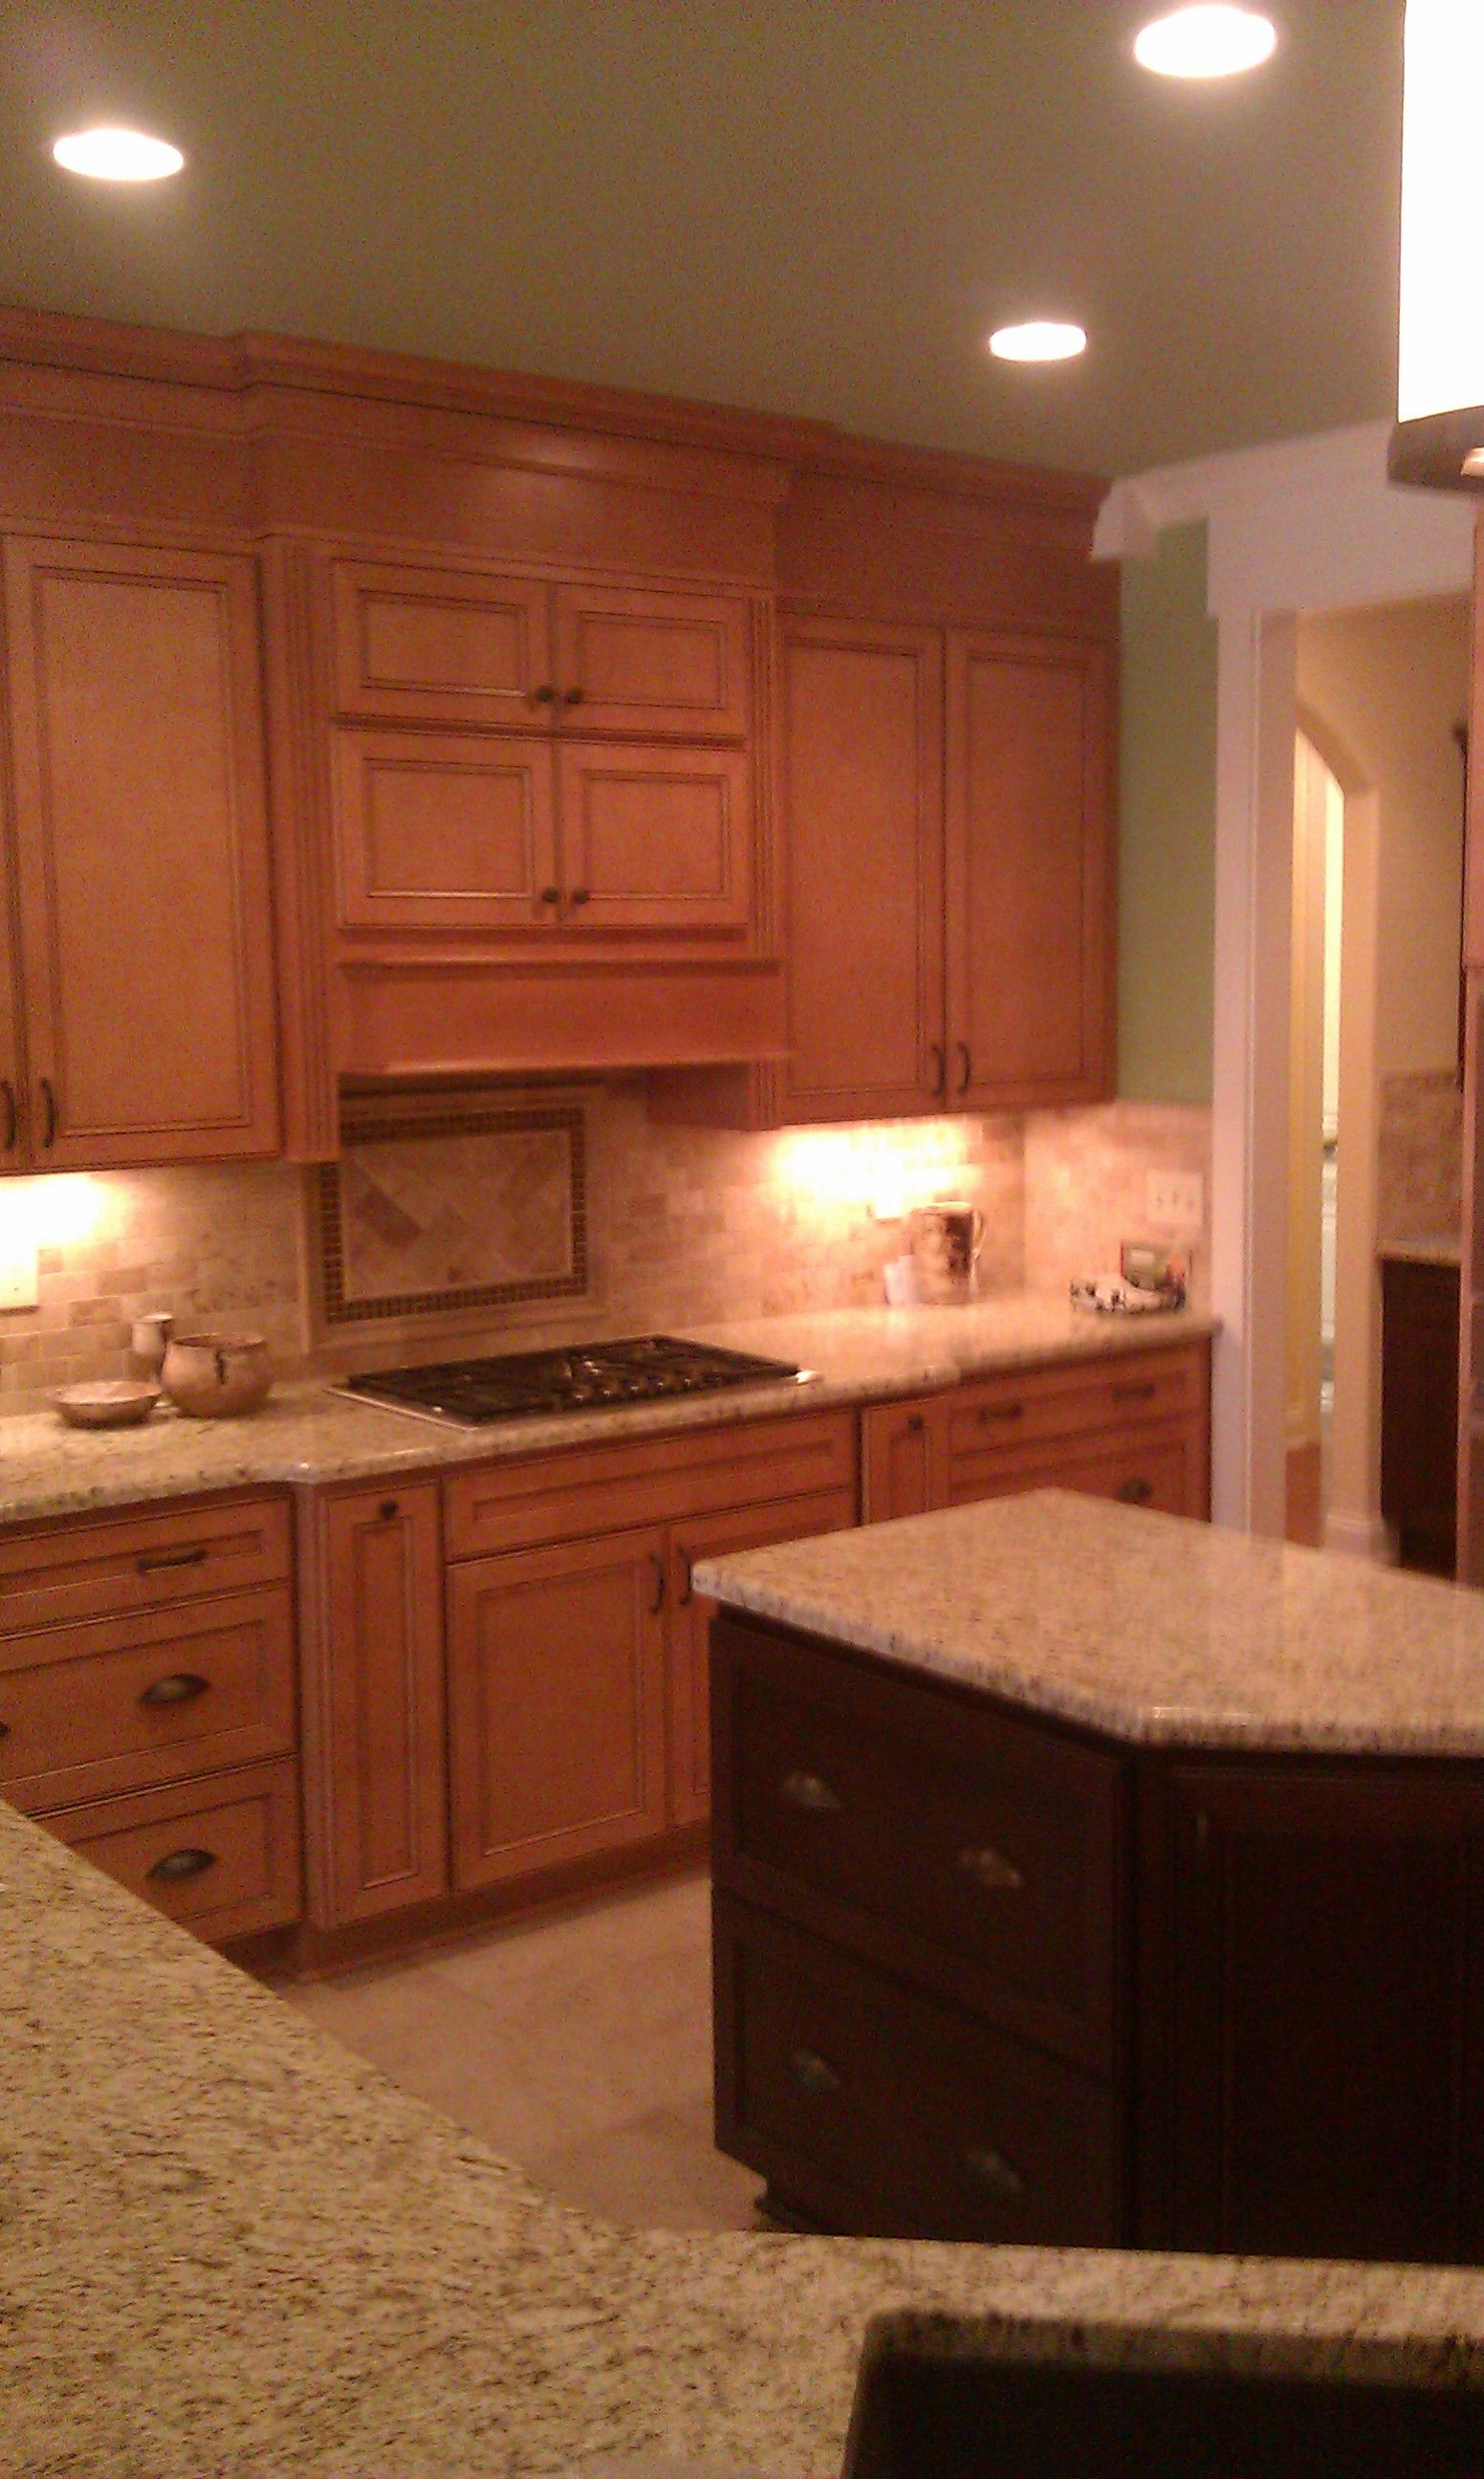 Liddell2 Kitchen Sales Kitchen Sale Kitchen Cabinets Kitchen